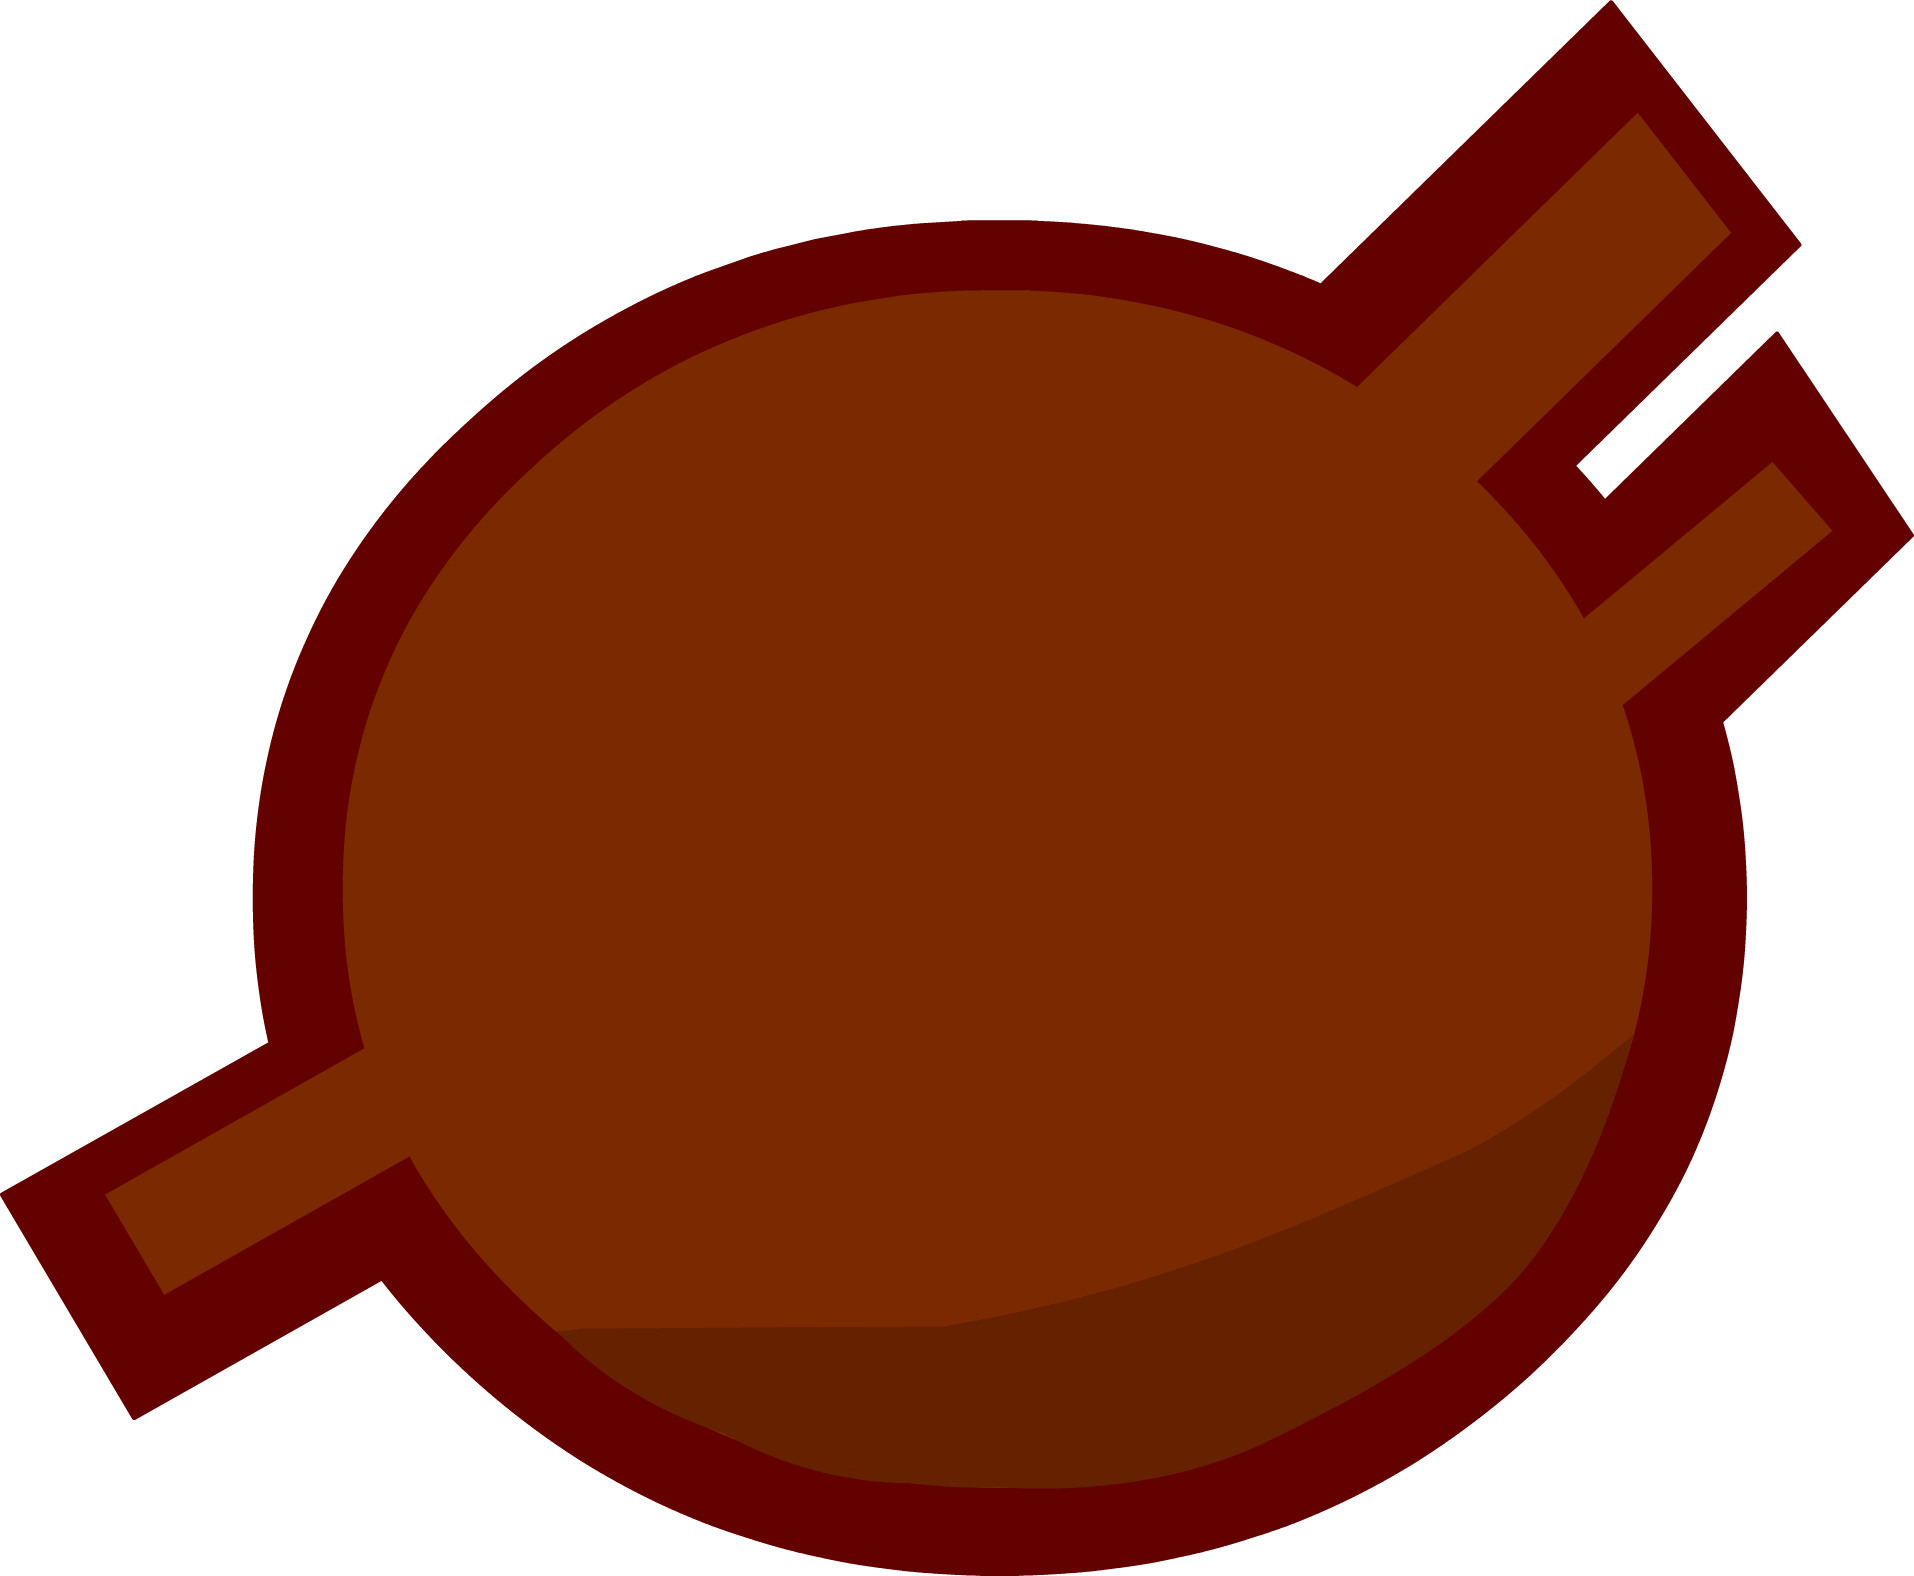 Planets clipart asteroid. Image body png challenge